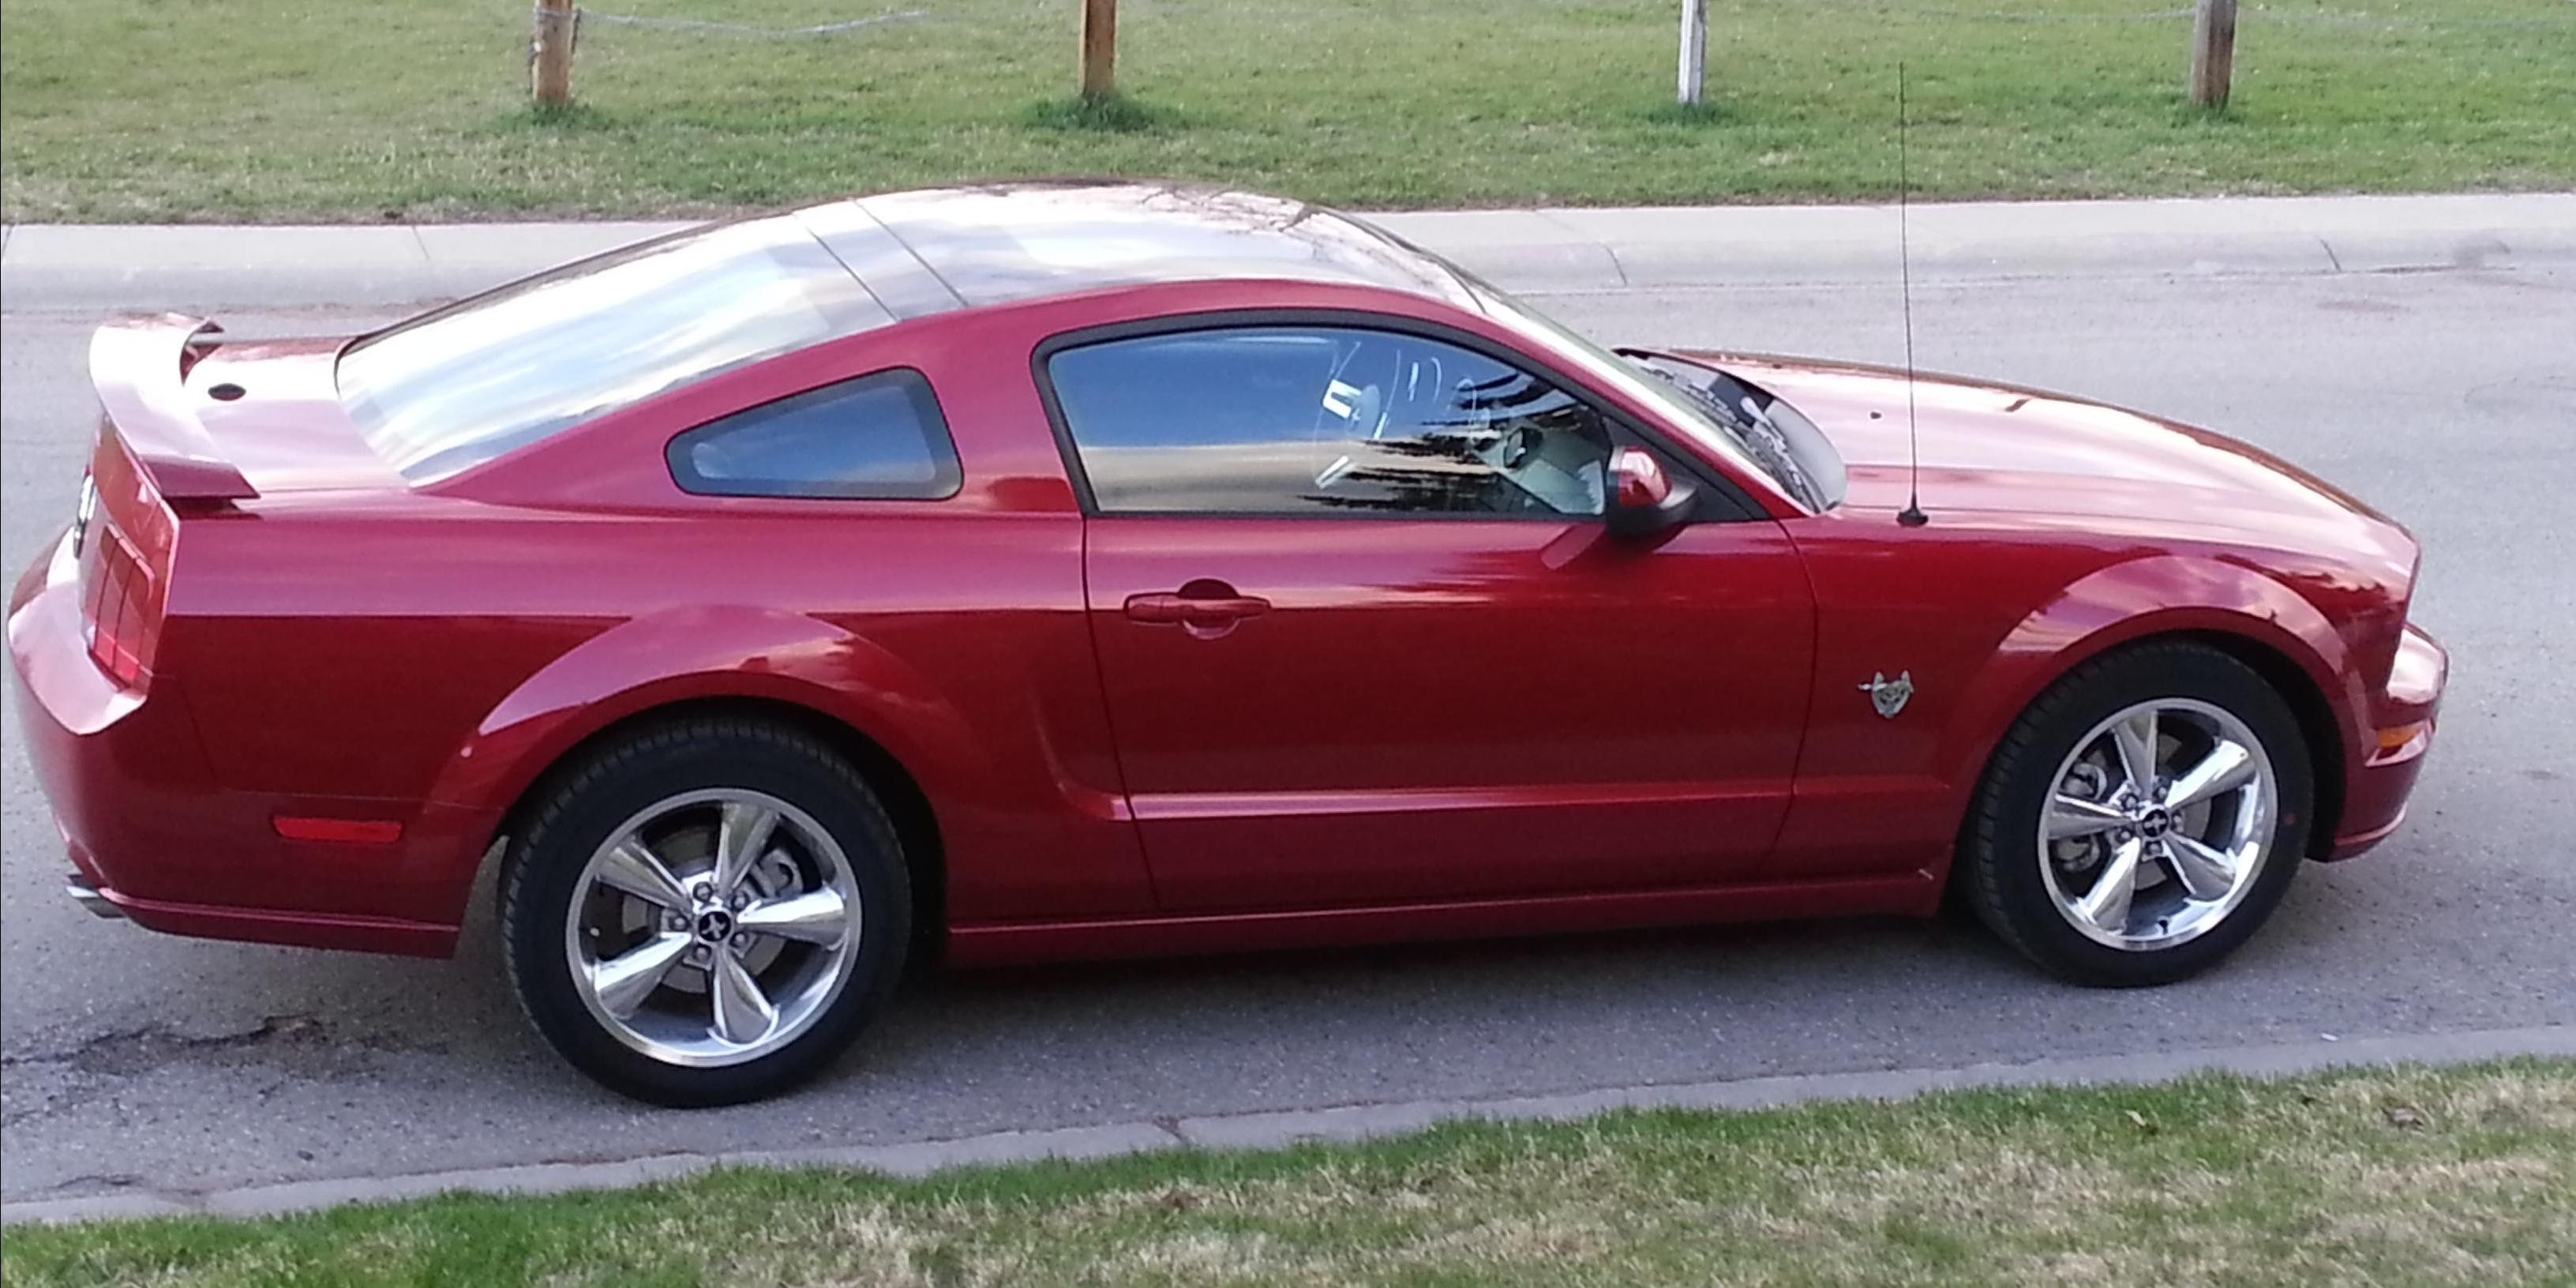 search results 2014 mustang gt 0 to 60 autos weblog. Black Bedroom Furniture Sets. Home Design Ideas